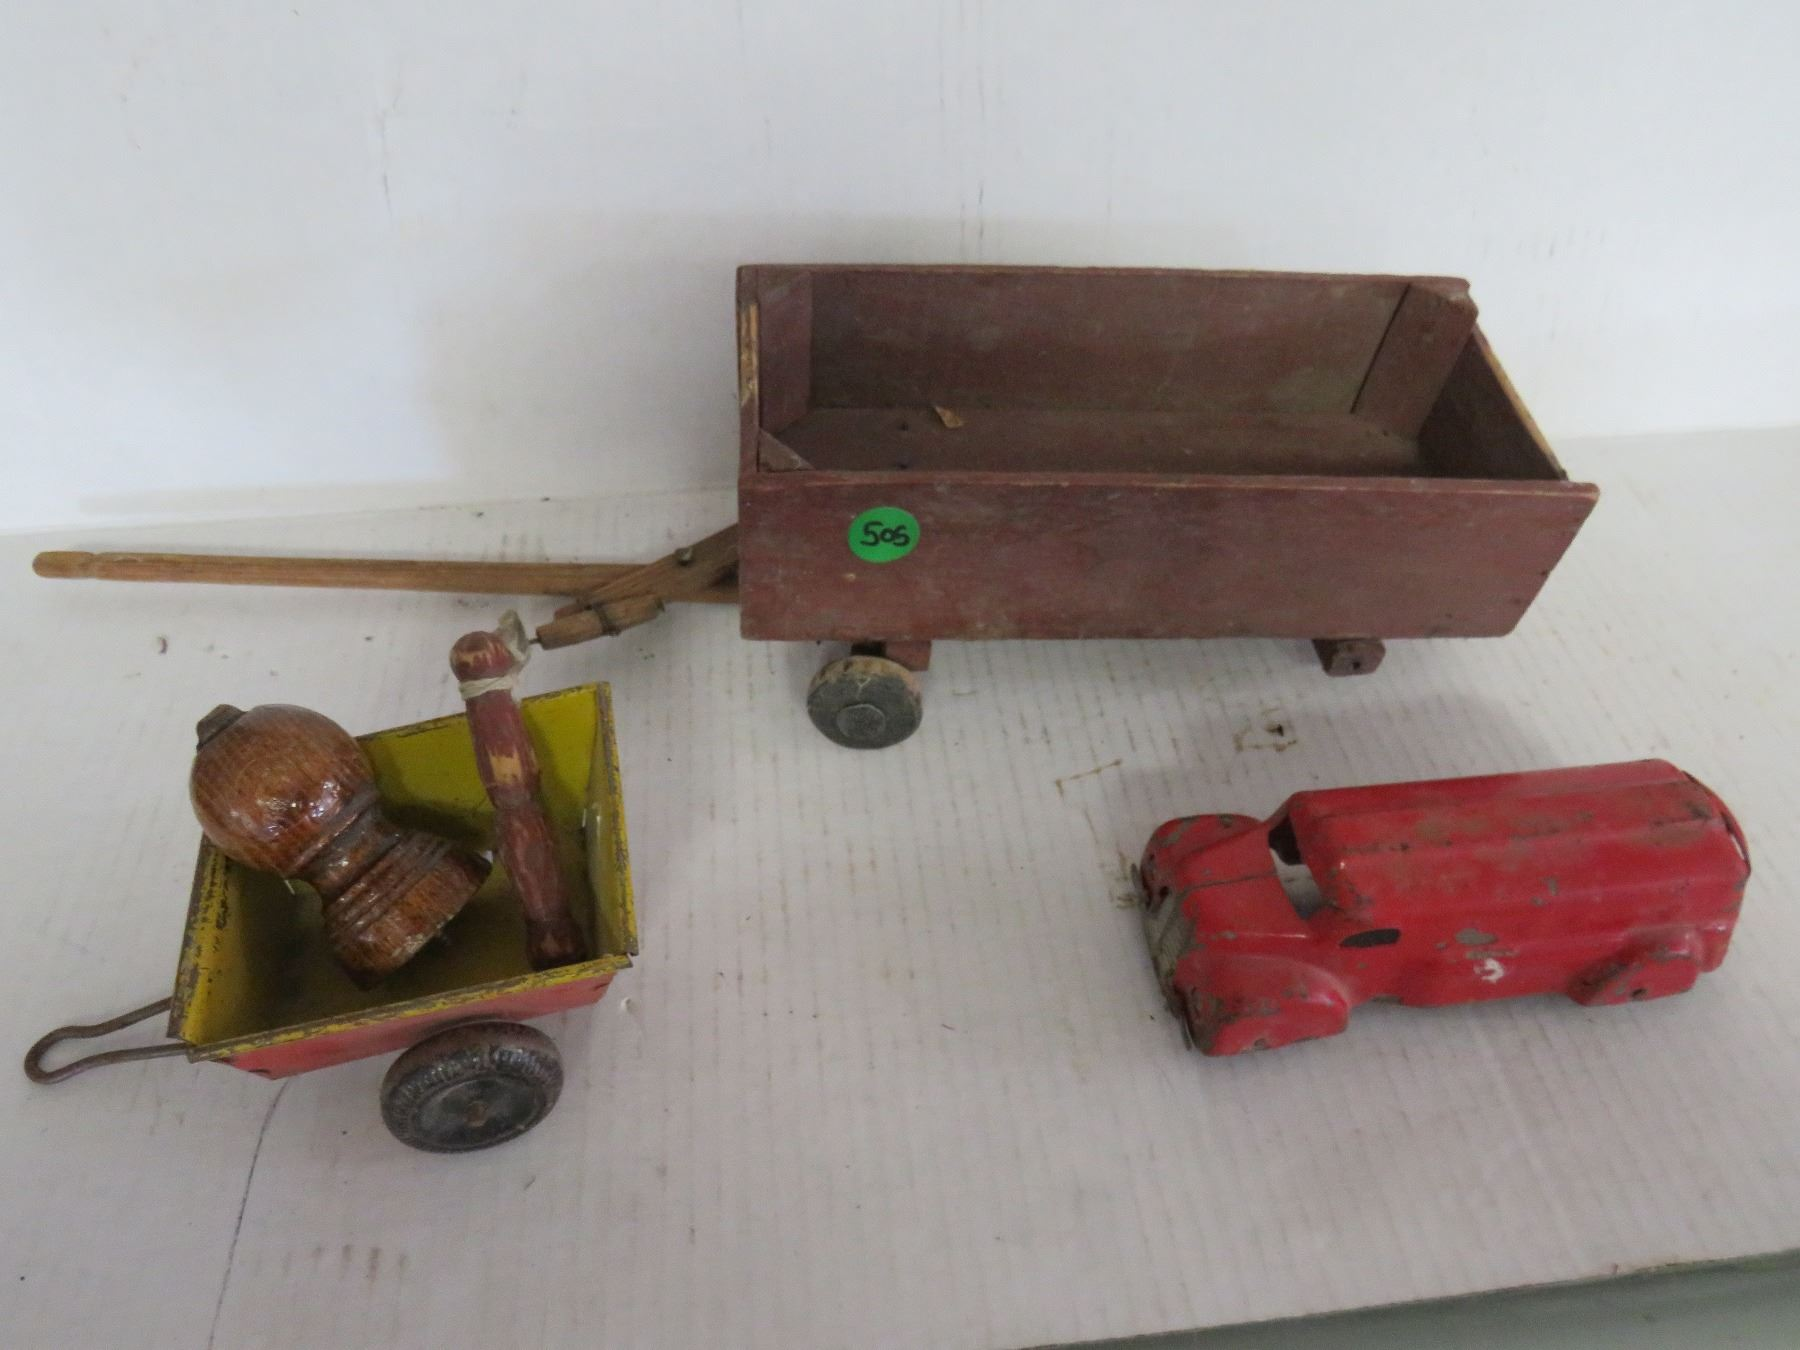 Antique Toy Wooden Wagon Missing Wheel Tin Toy Truck Original Missing Wheel Tin Toy Wagon